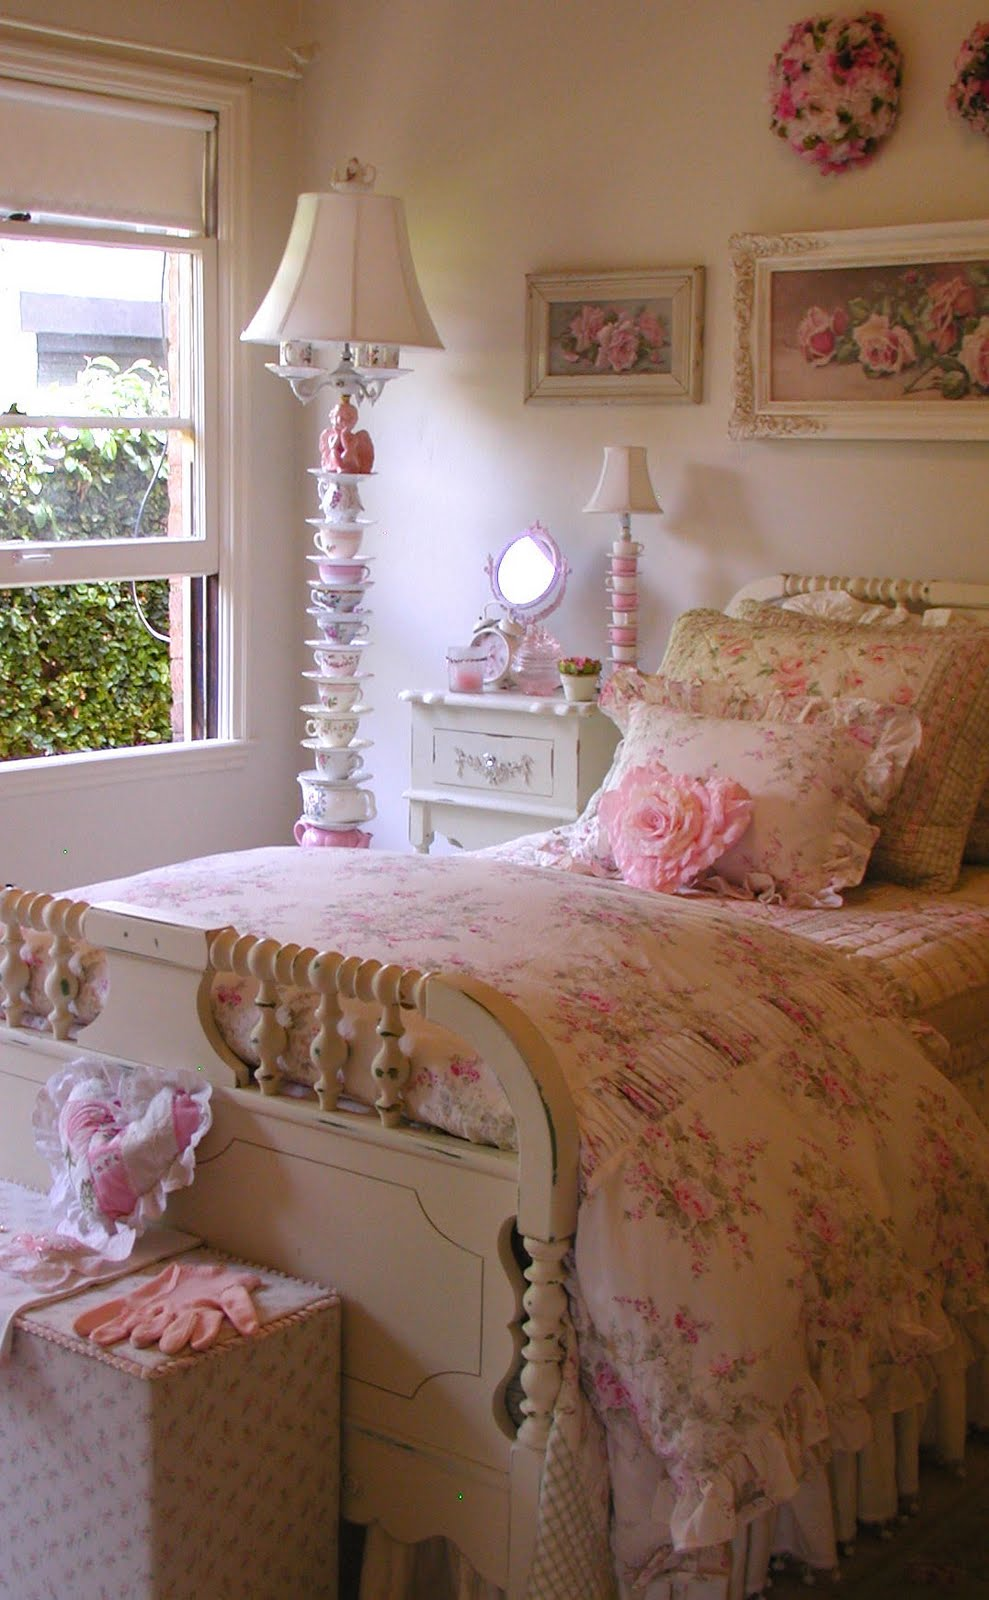 Chateau de fleurs english cottage romance for Country cottage bedroom